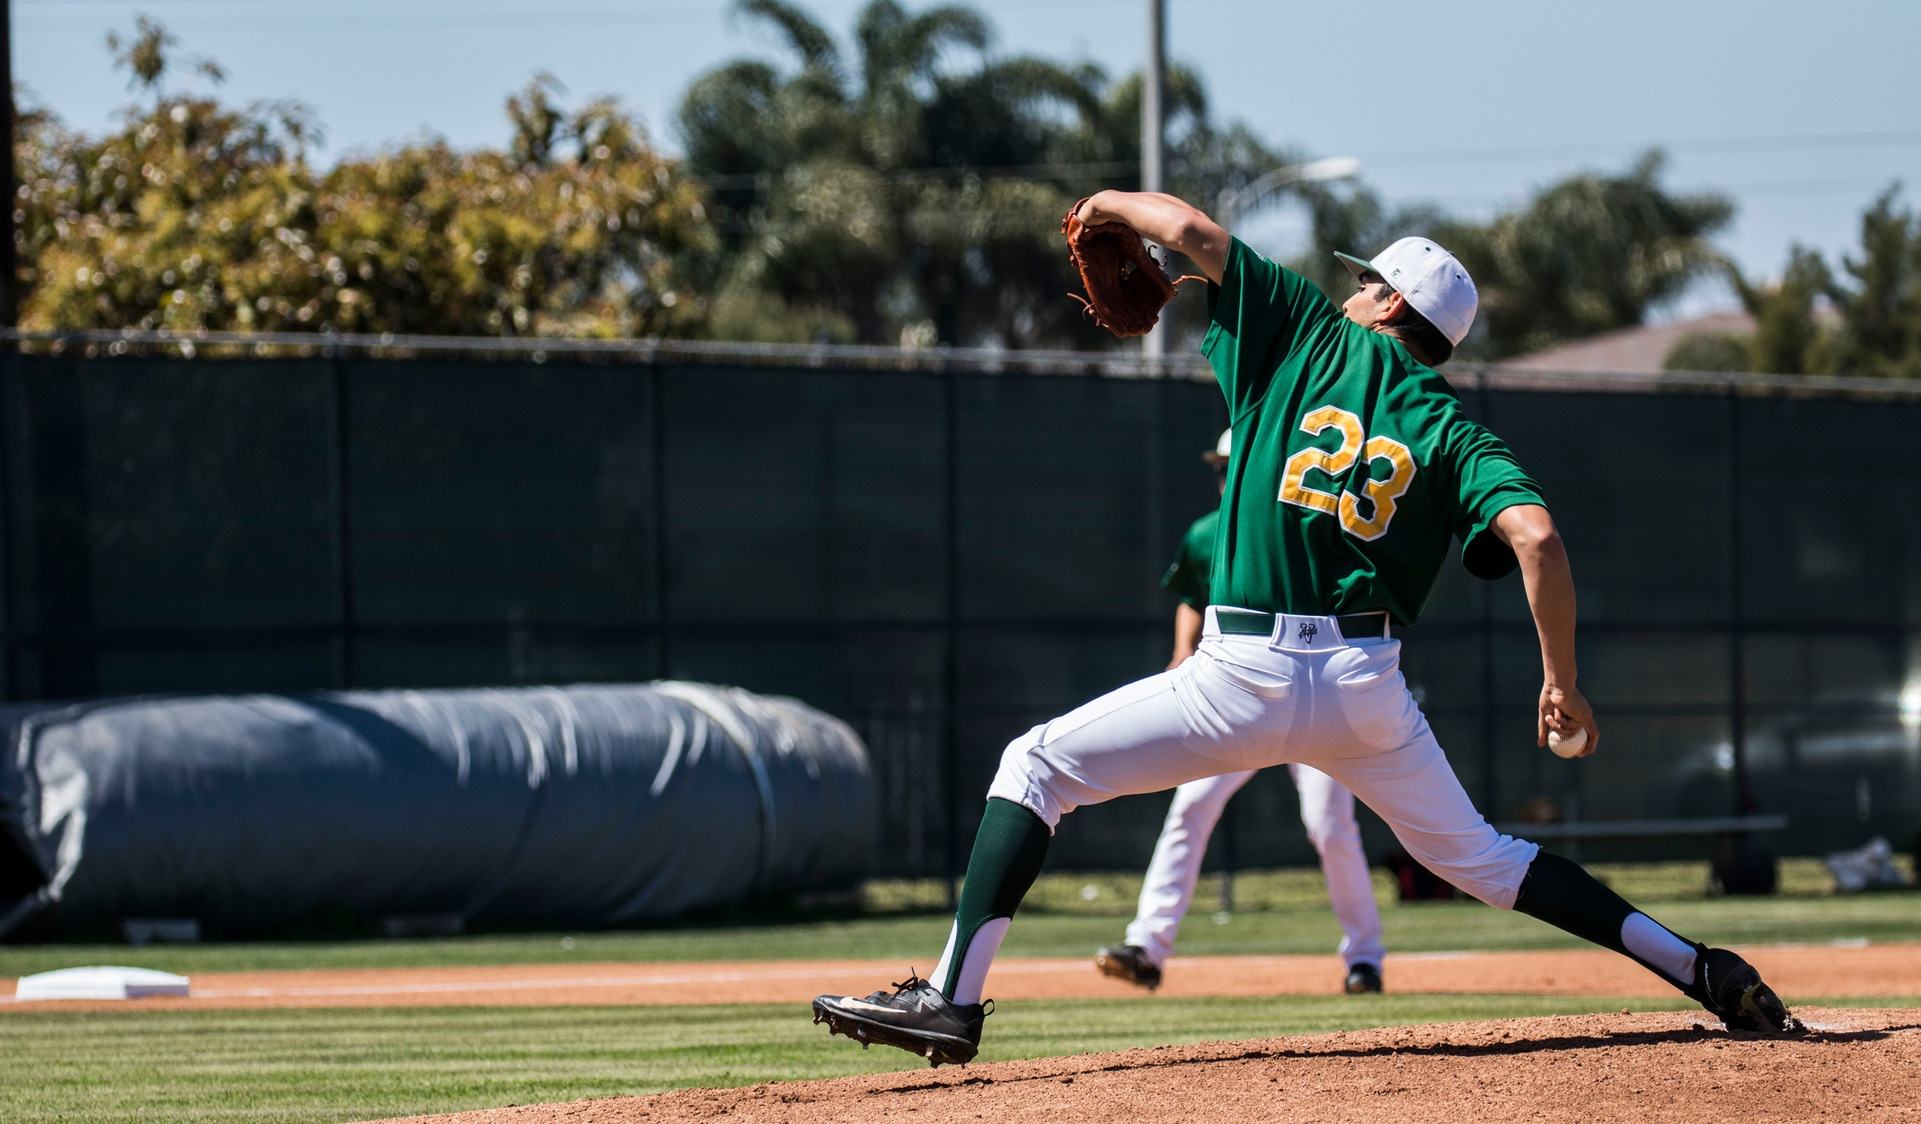 Baseball: Ibarra Throws 9 Shutout Innings of No Hit Ball in 10 Inning Win